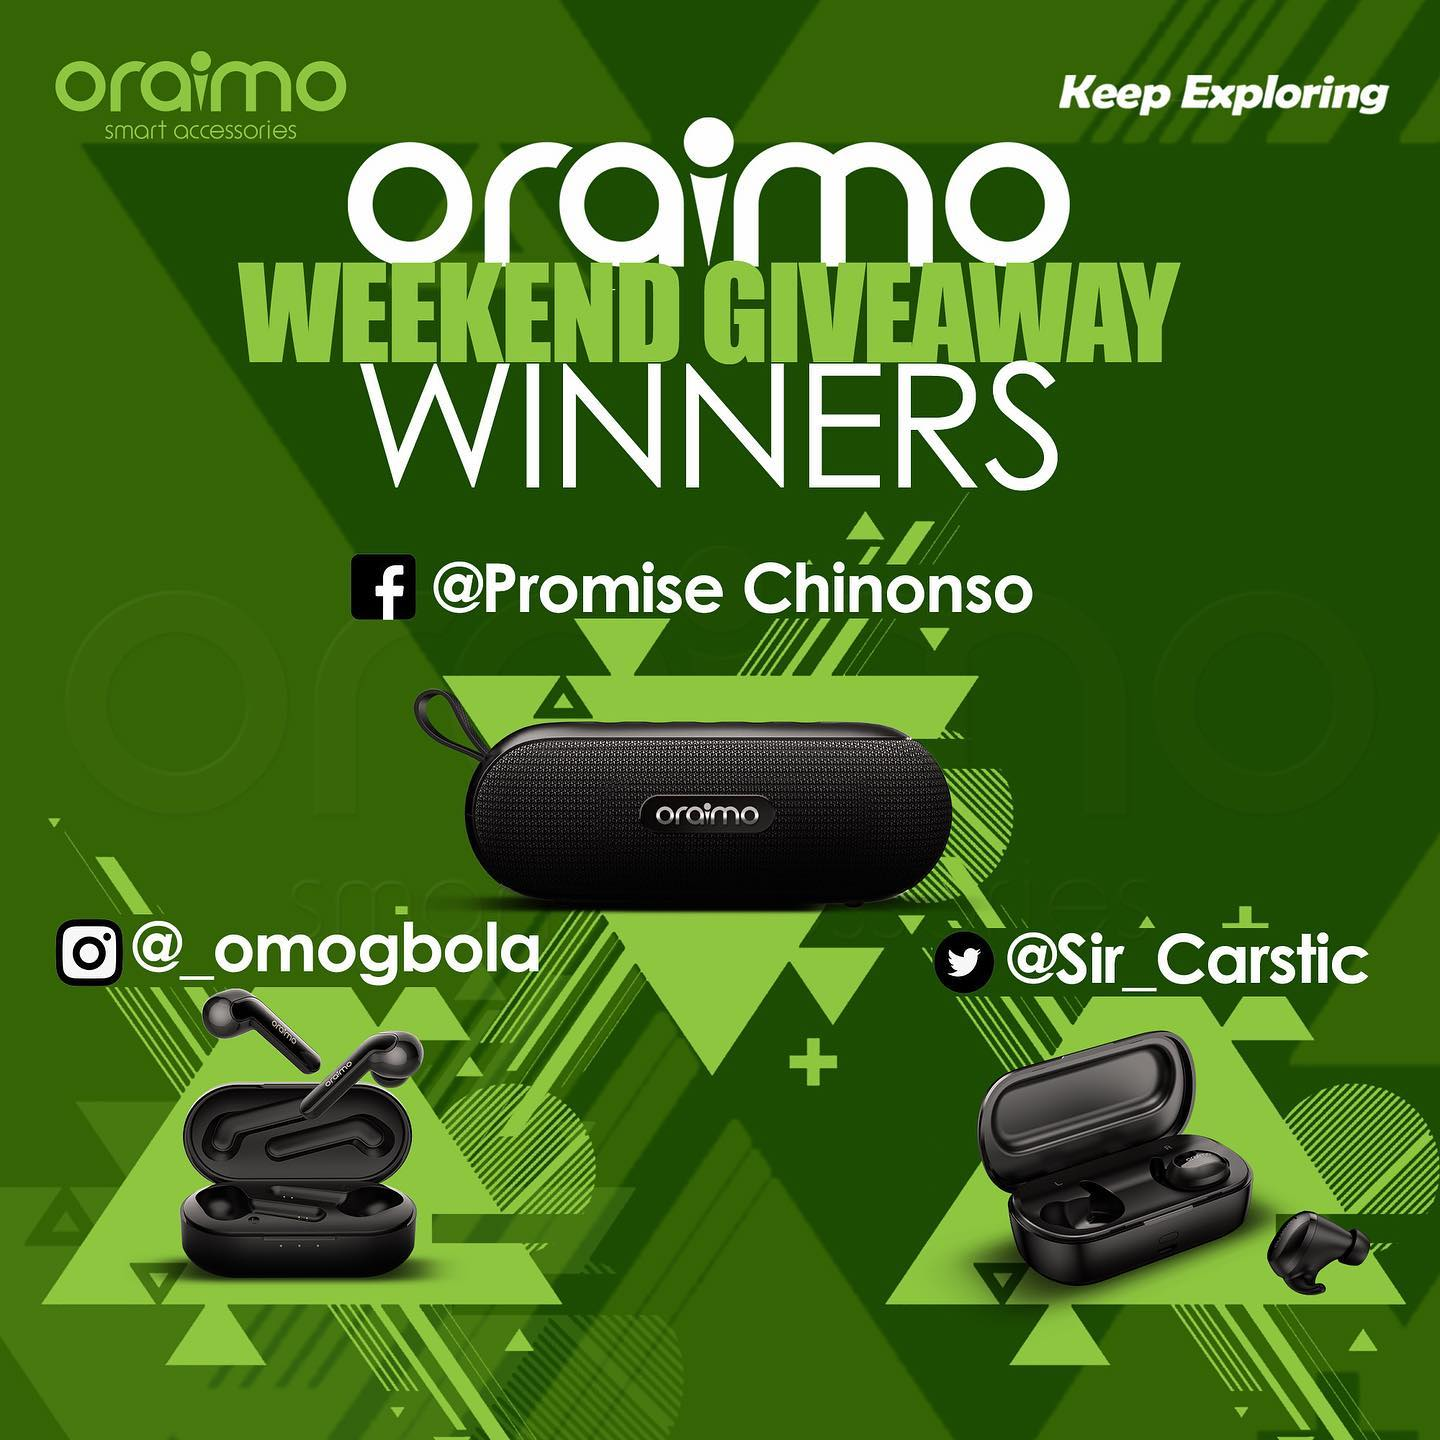 Winners of Oraimo Weekend Giveaway.